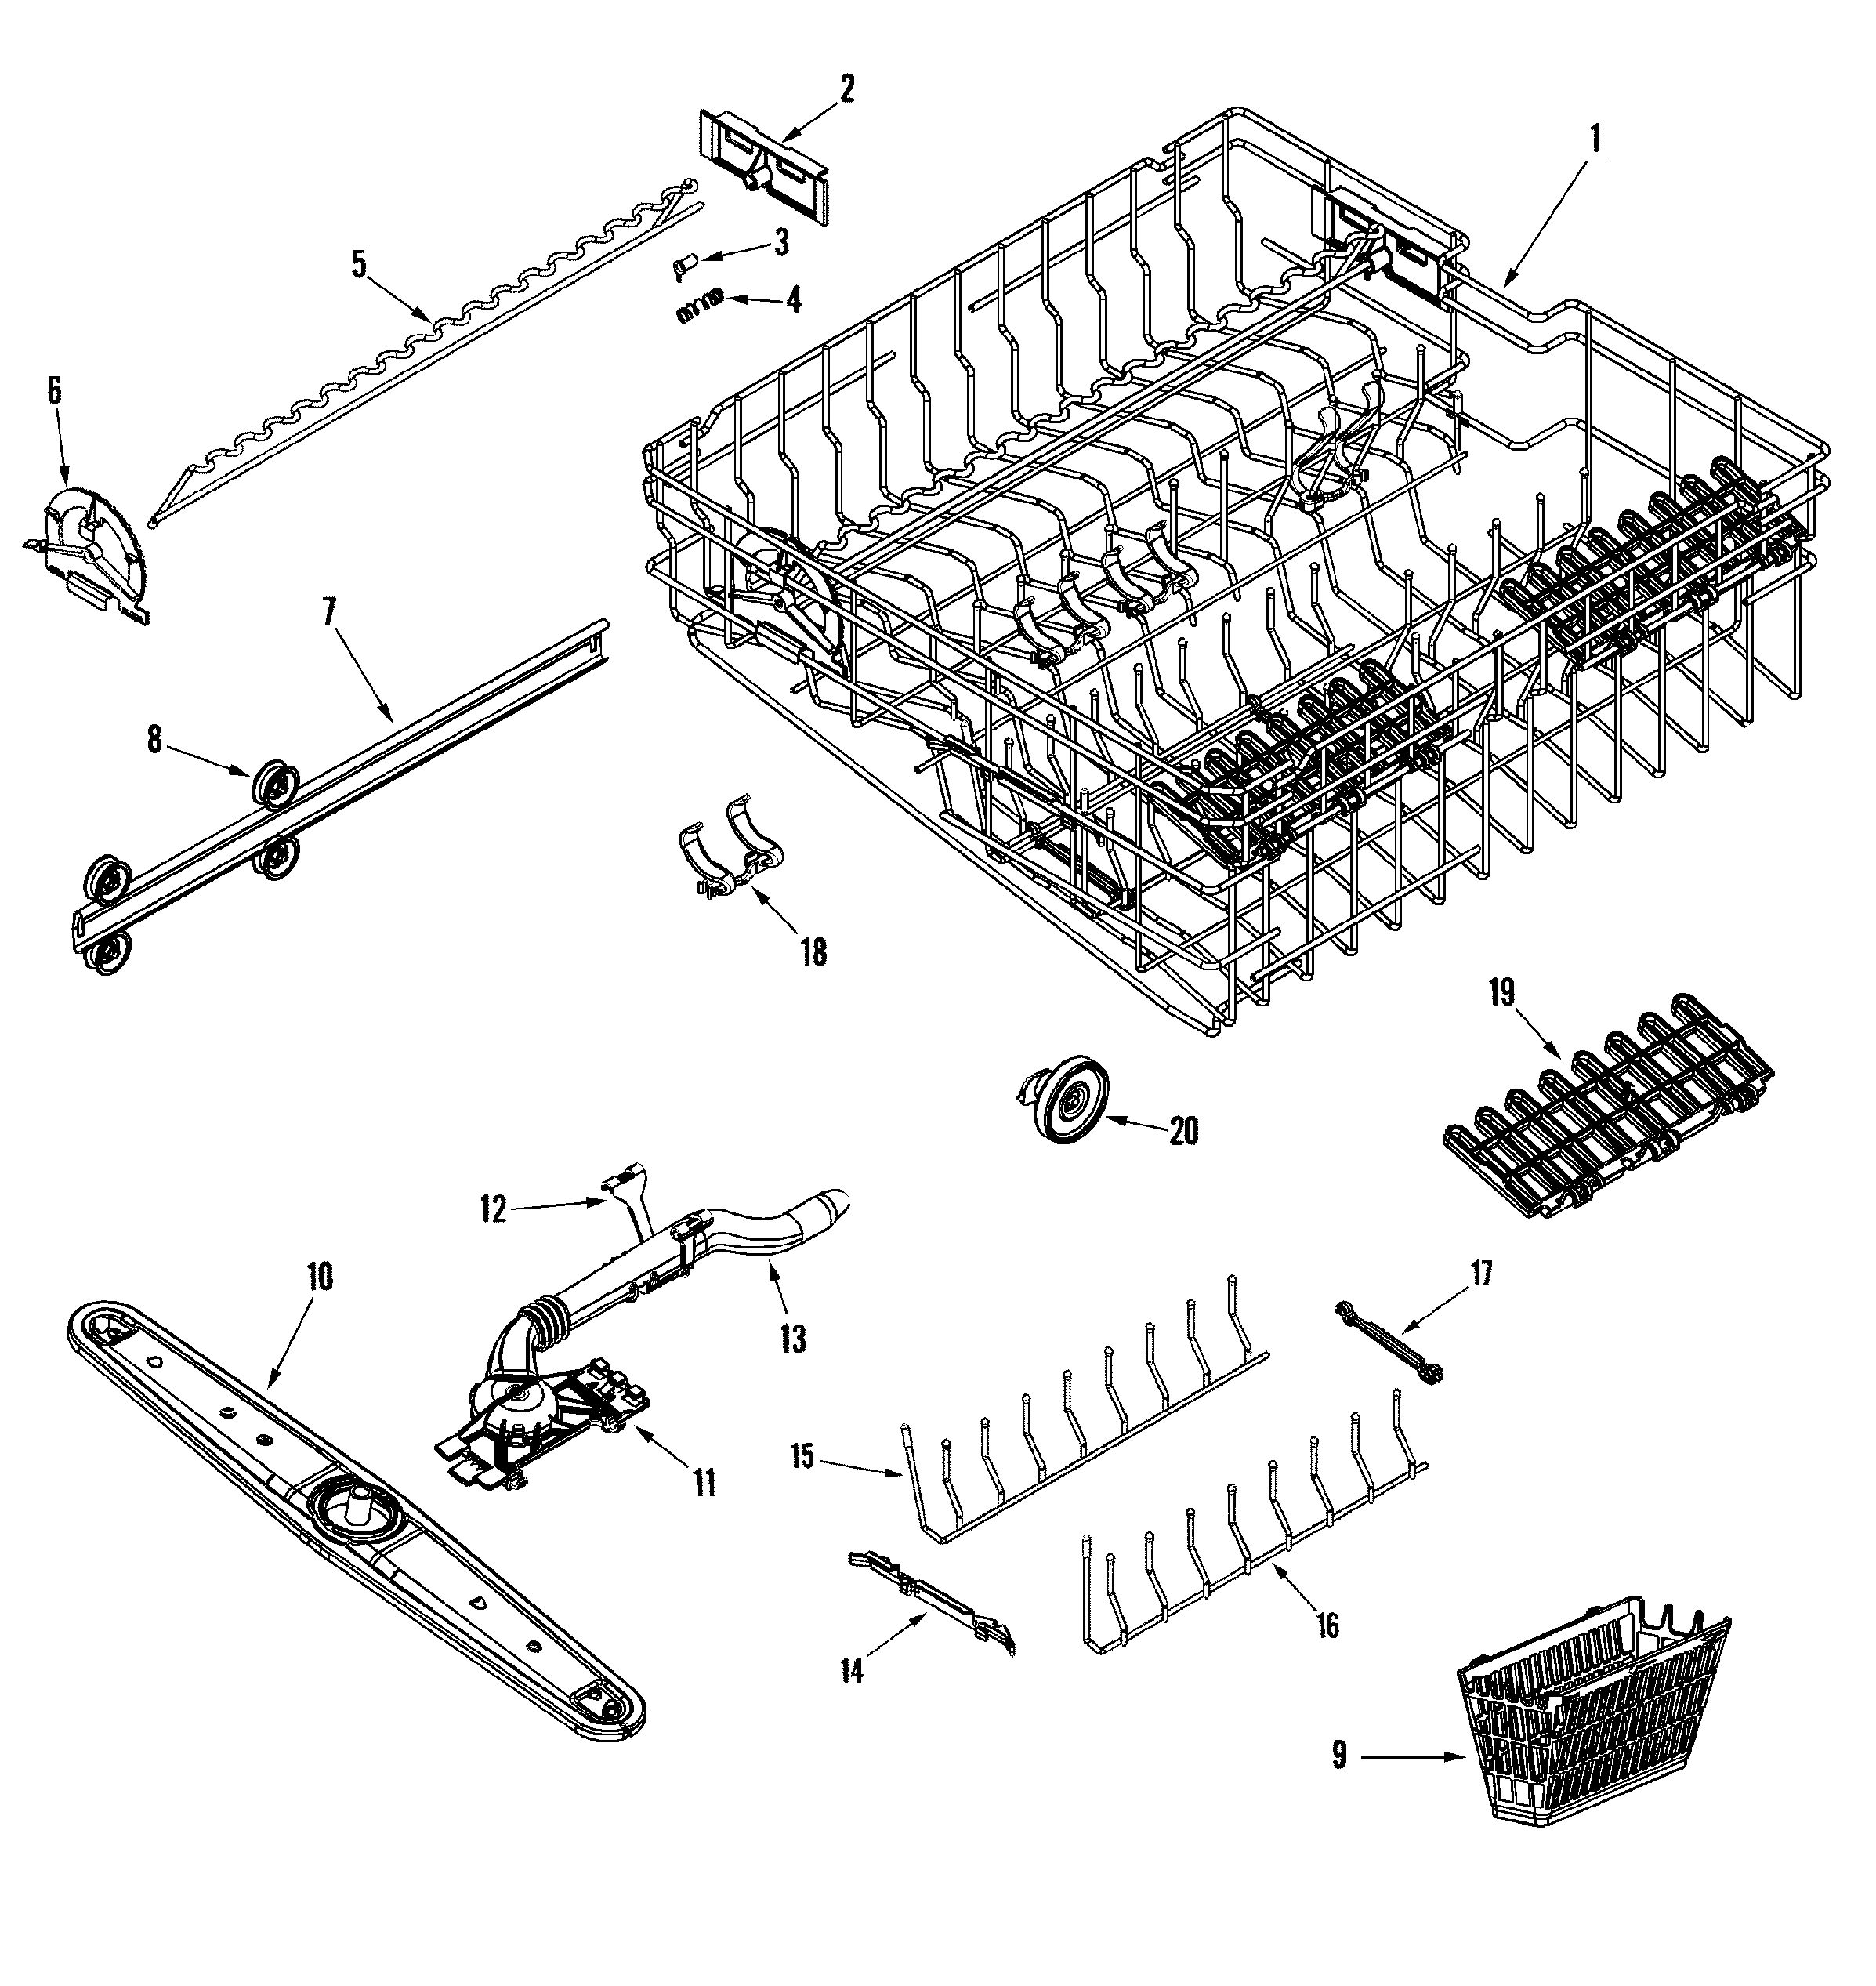 RACK ASSEMBLY (UPR) Diagram & Parts List for Model